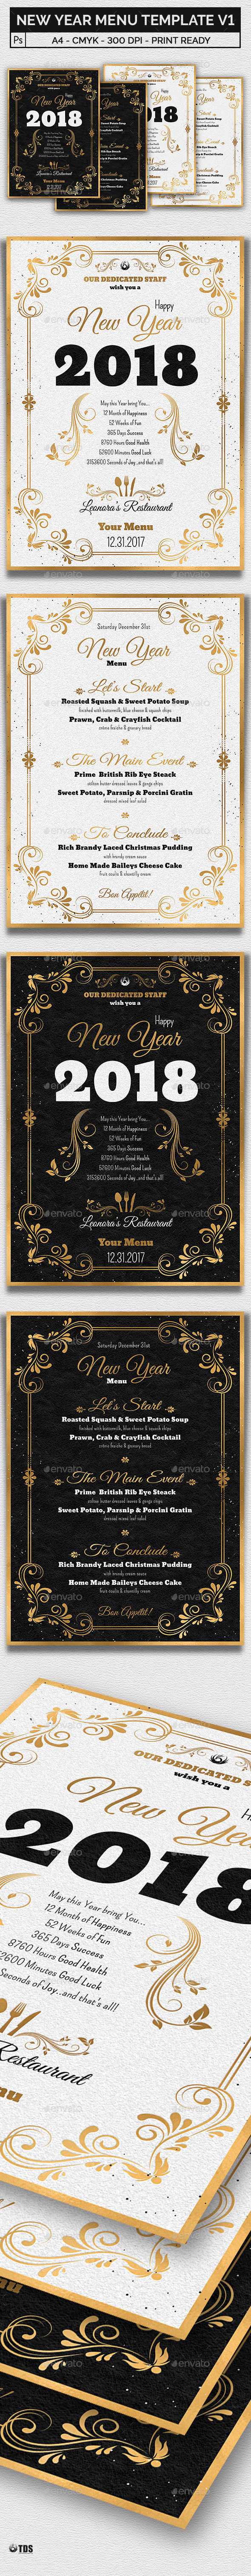 New Year Menu Template V1 by lou606 | GraphicRiver